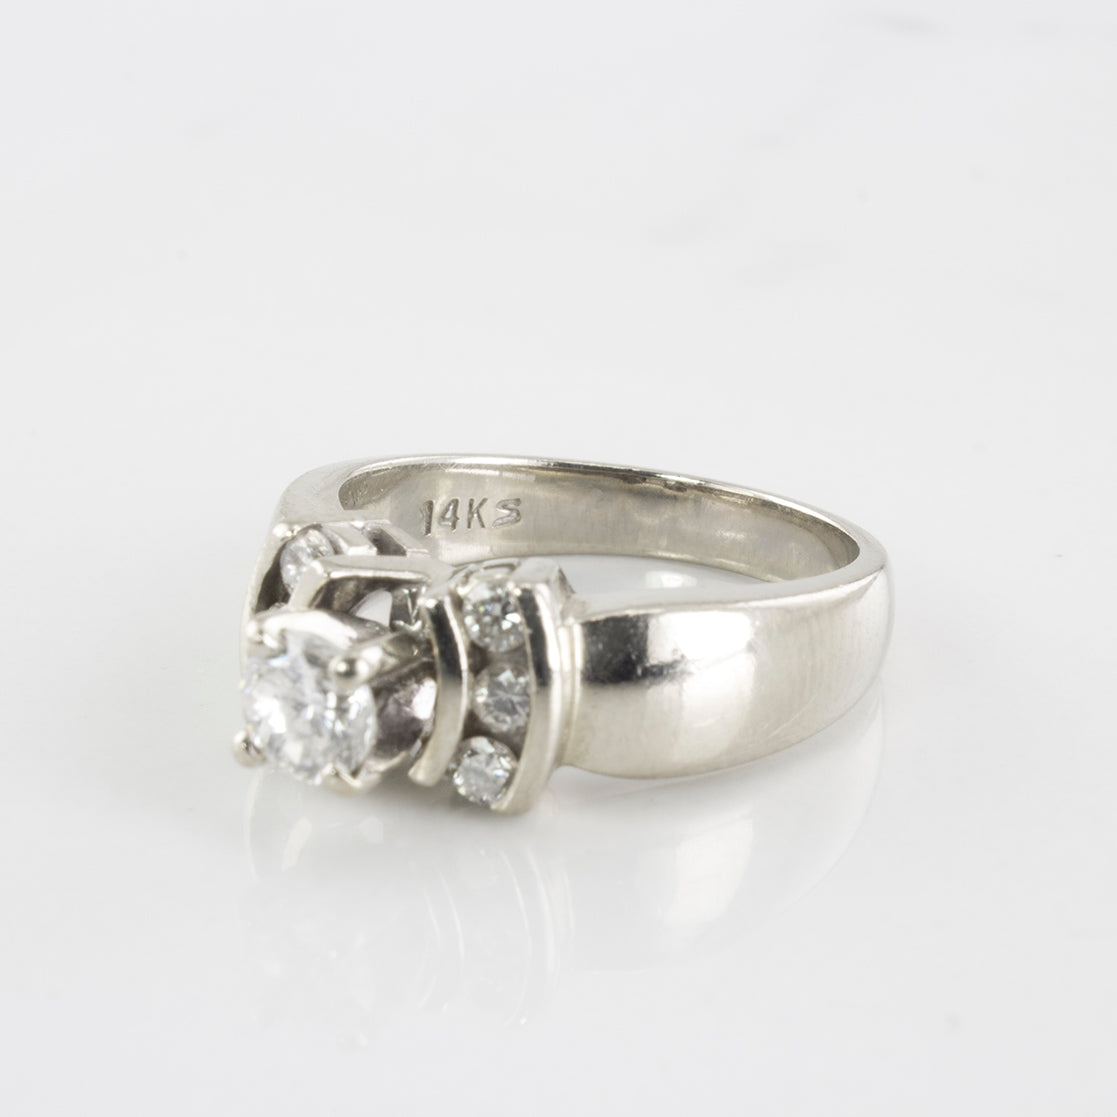 Channel Accented Diamond Engagement Ring | 0.51 ctw | SZ 5.75 |